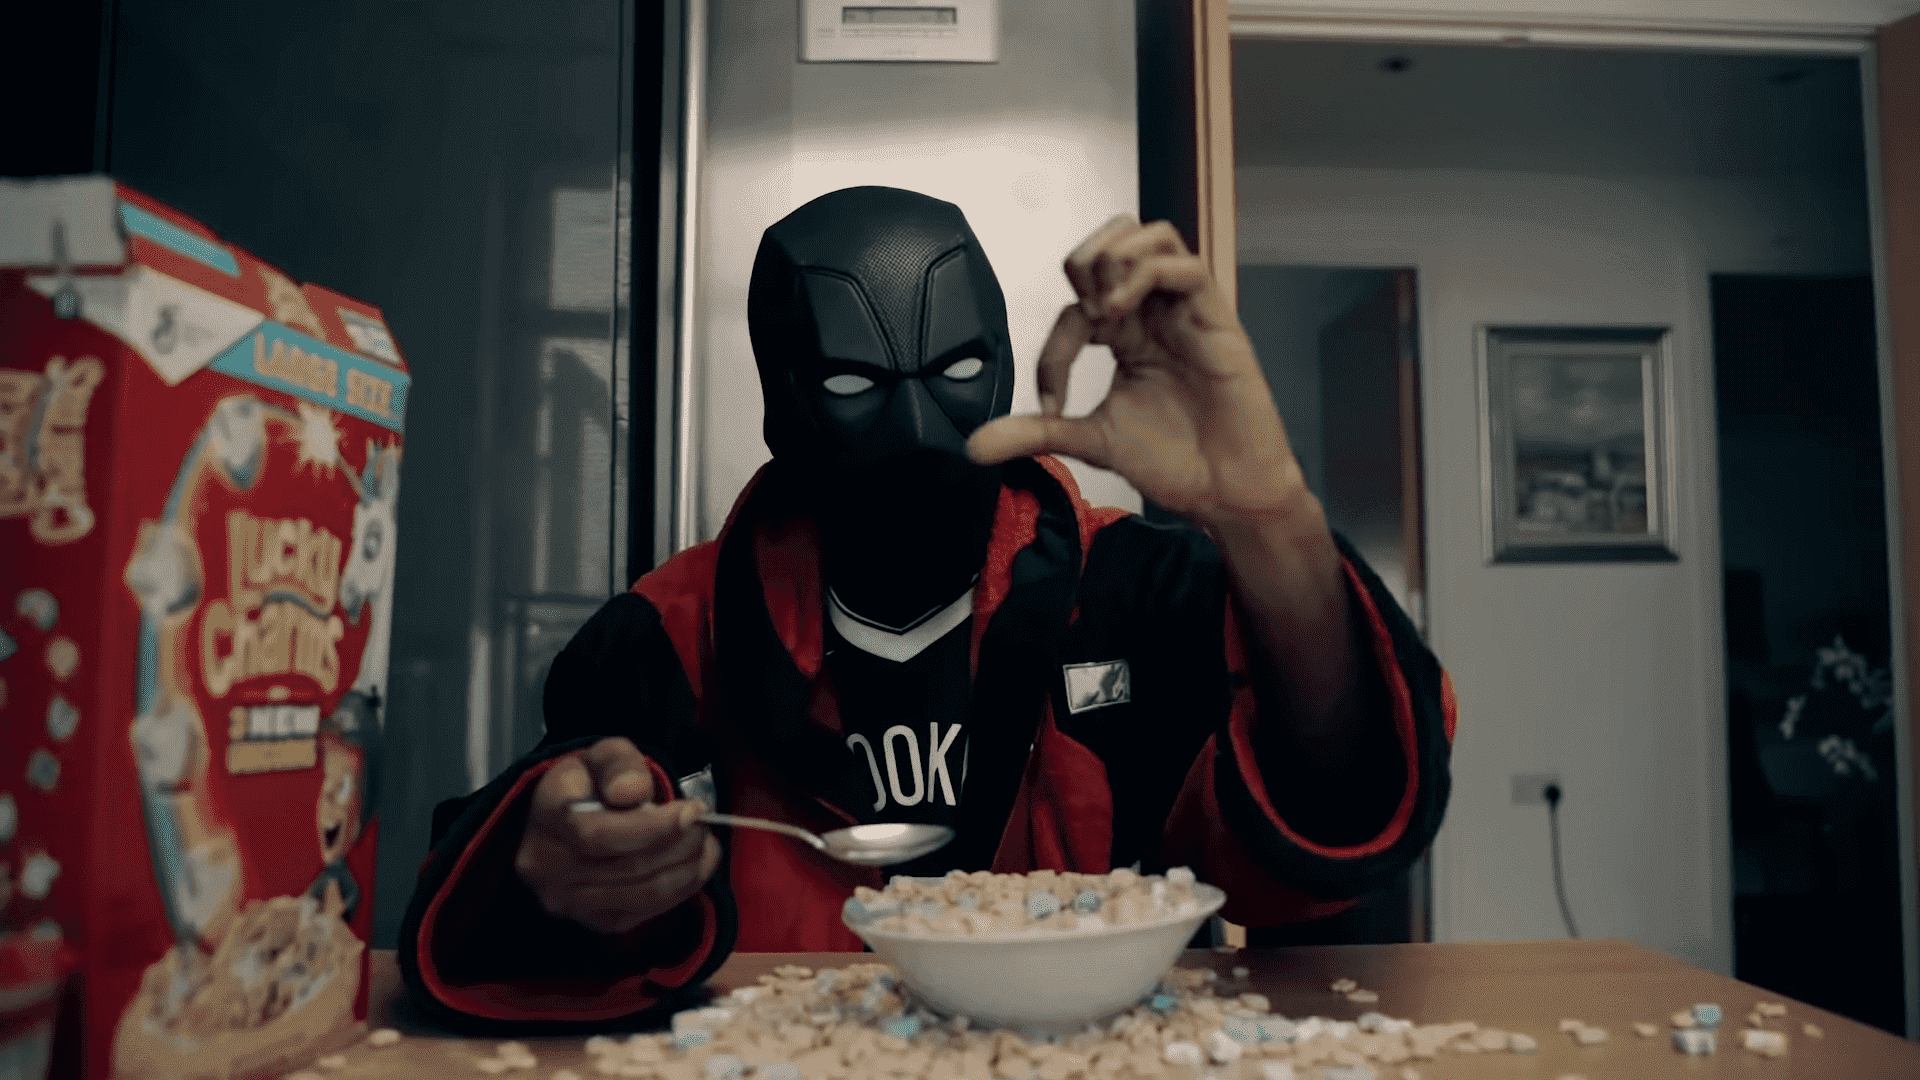 """V9 in his music video for the song """"Right or Wrong"""", where he dons his trademark face covering like many other drill rappers who wish to conceal their identity."""